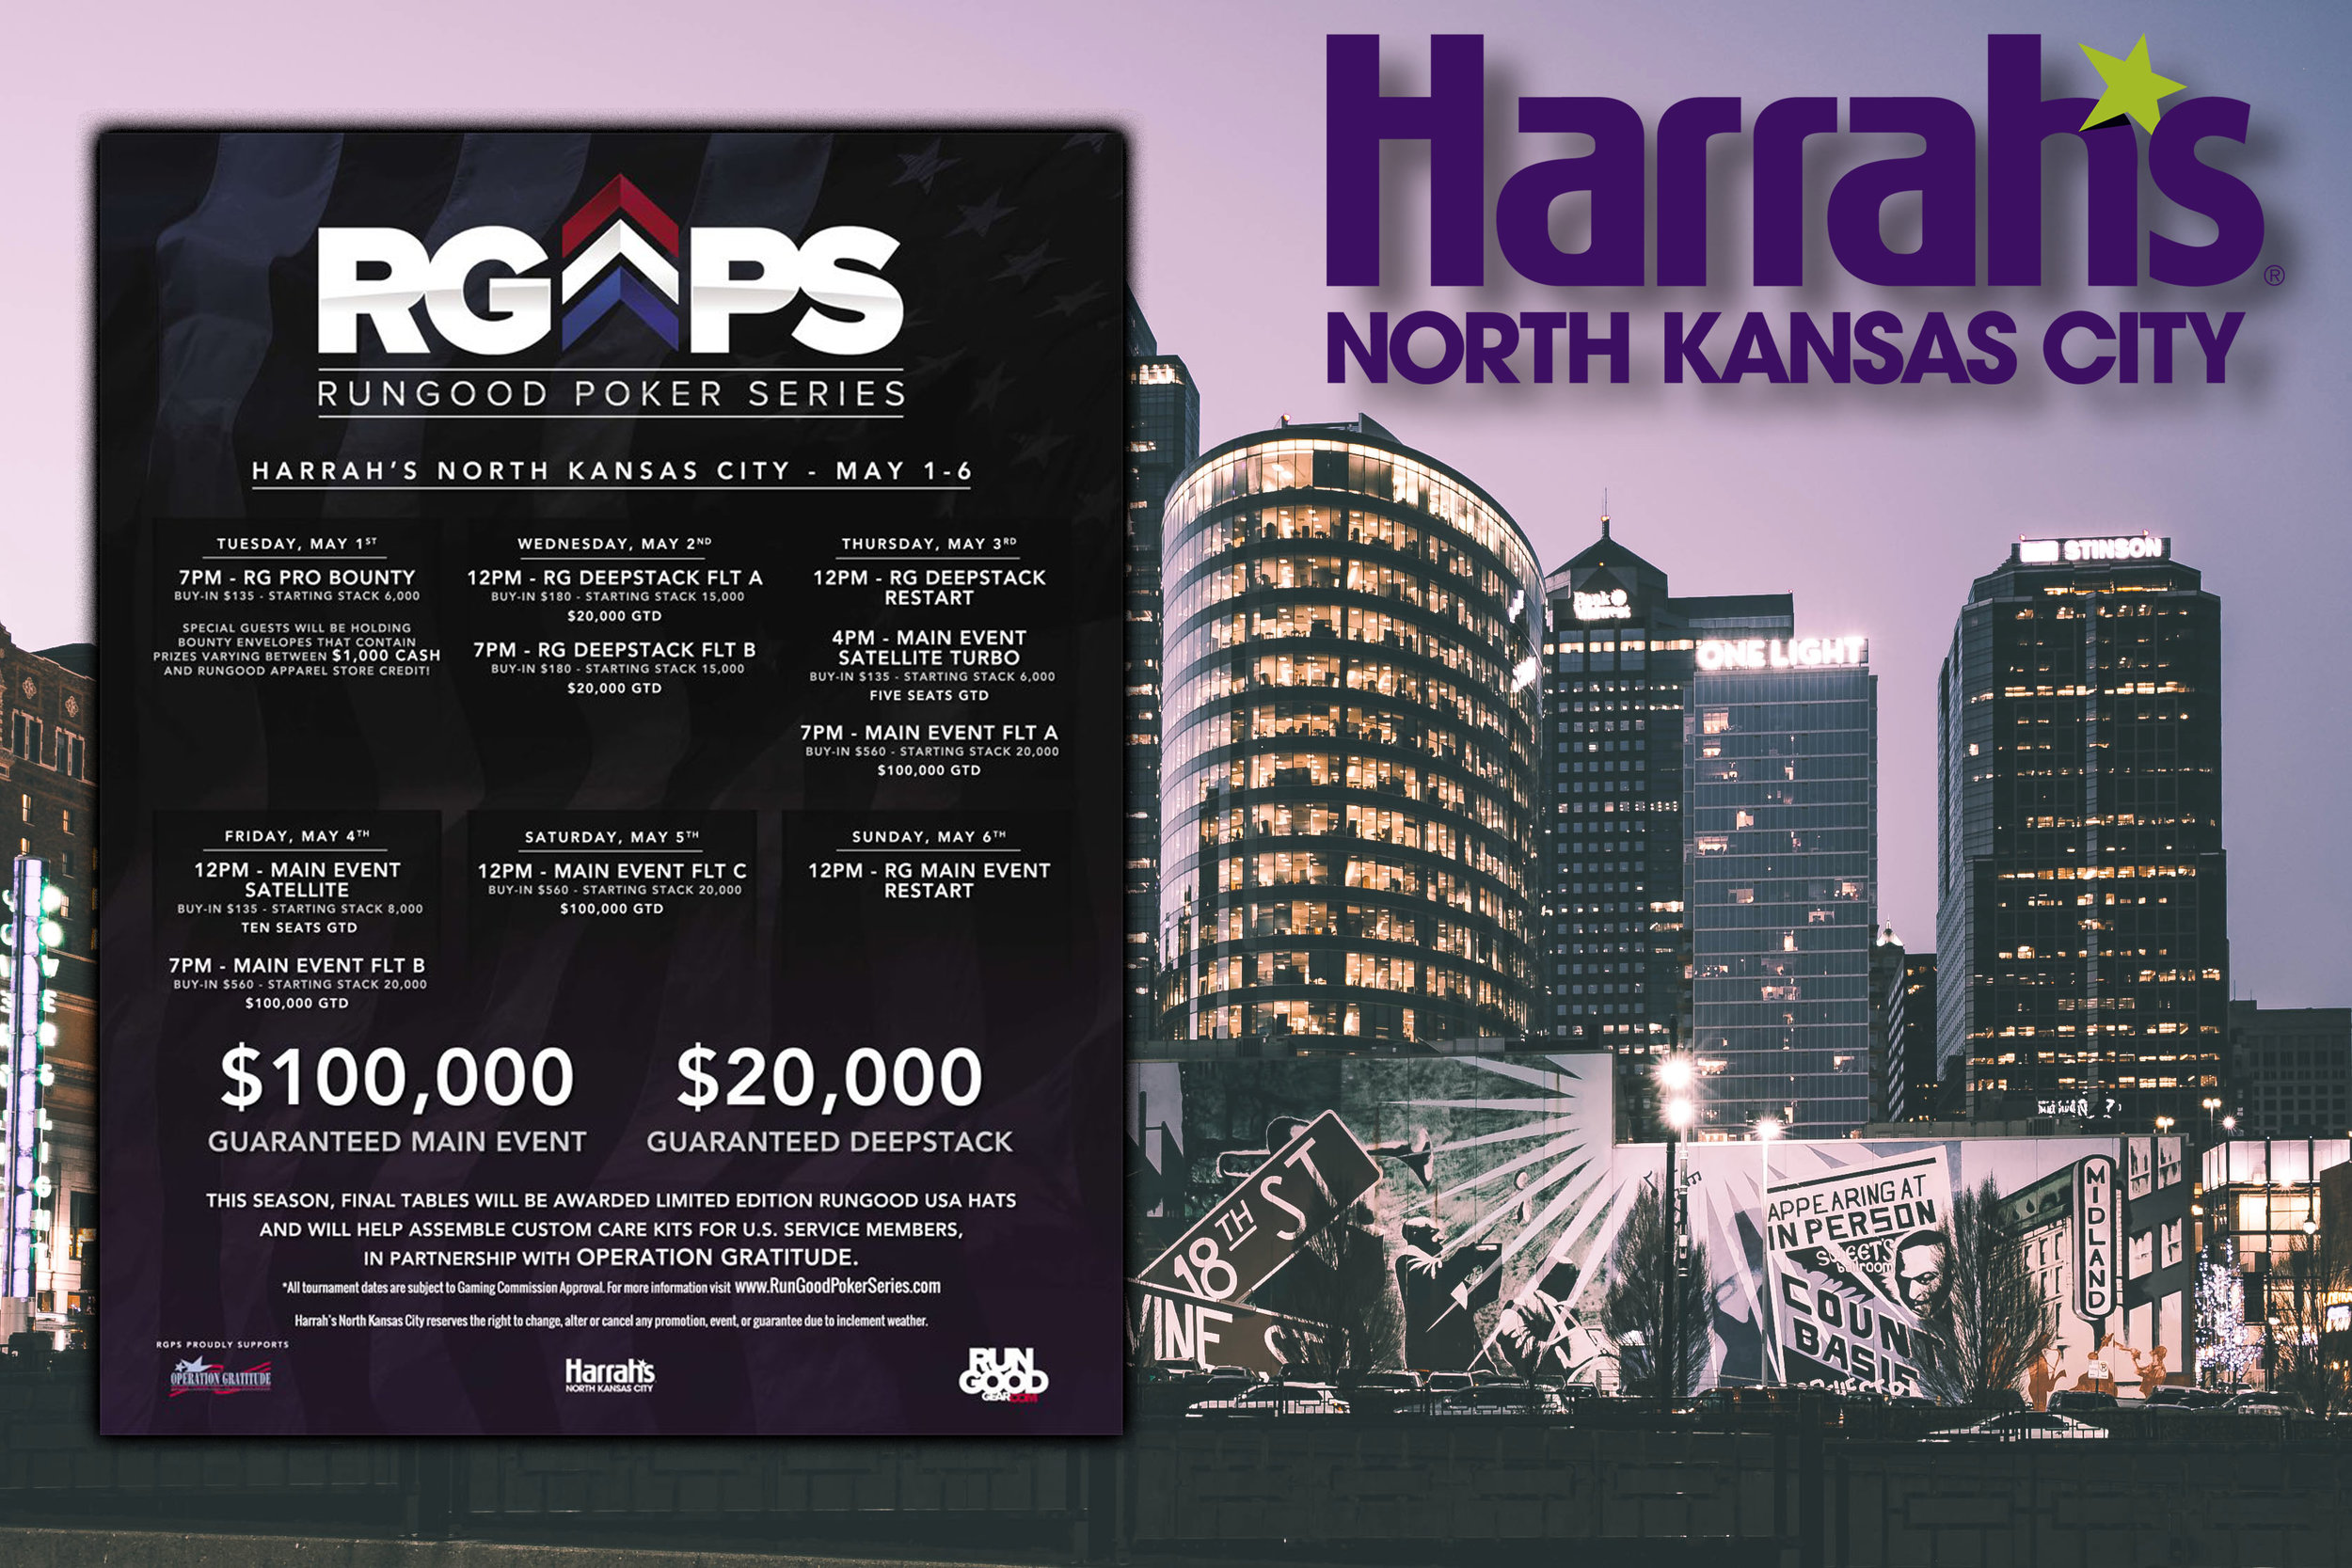 This graphic was used to promote the RunGood Poker Series Harrah's North Kansas City stop during the spring 2018 season.